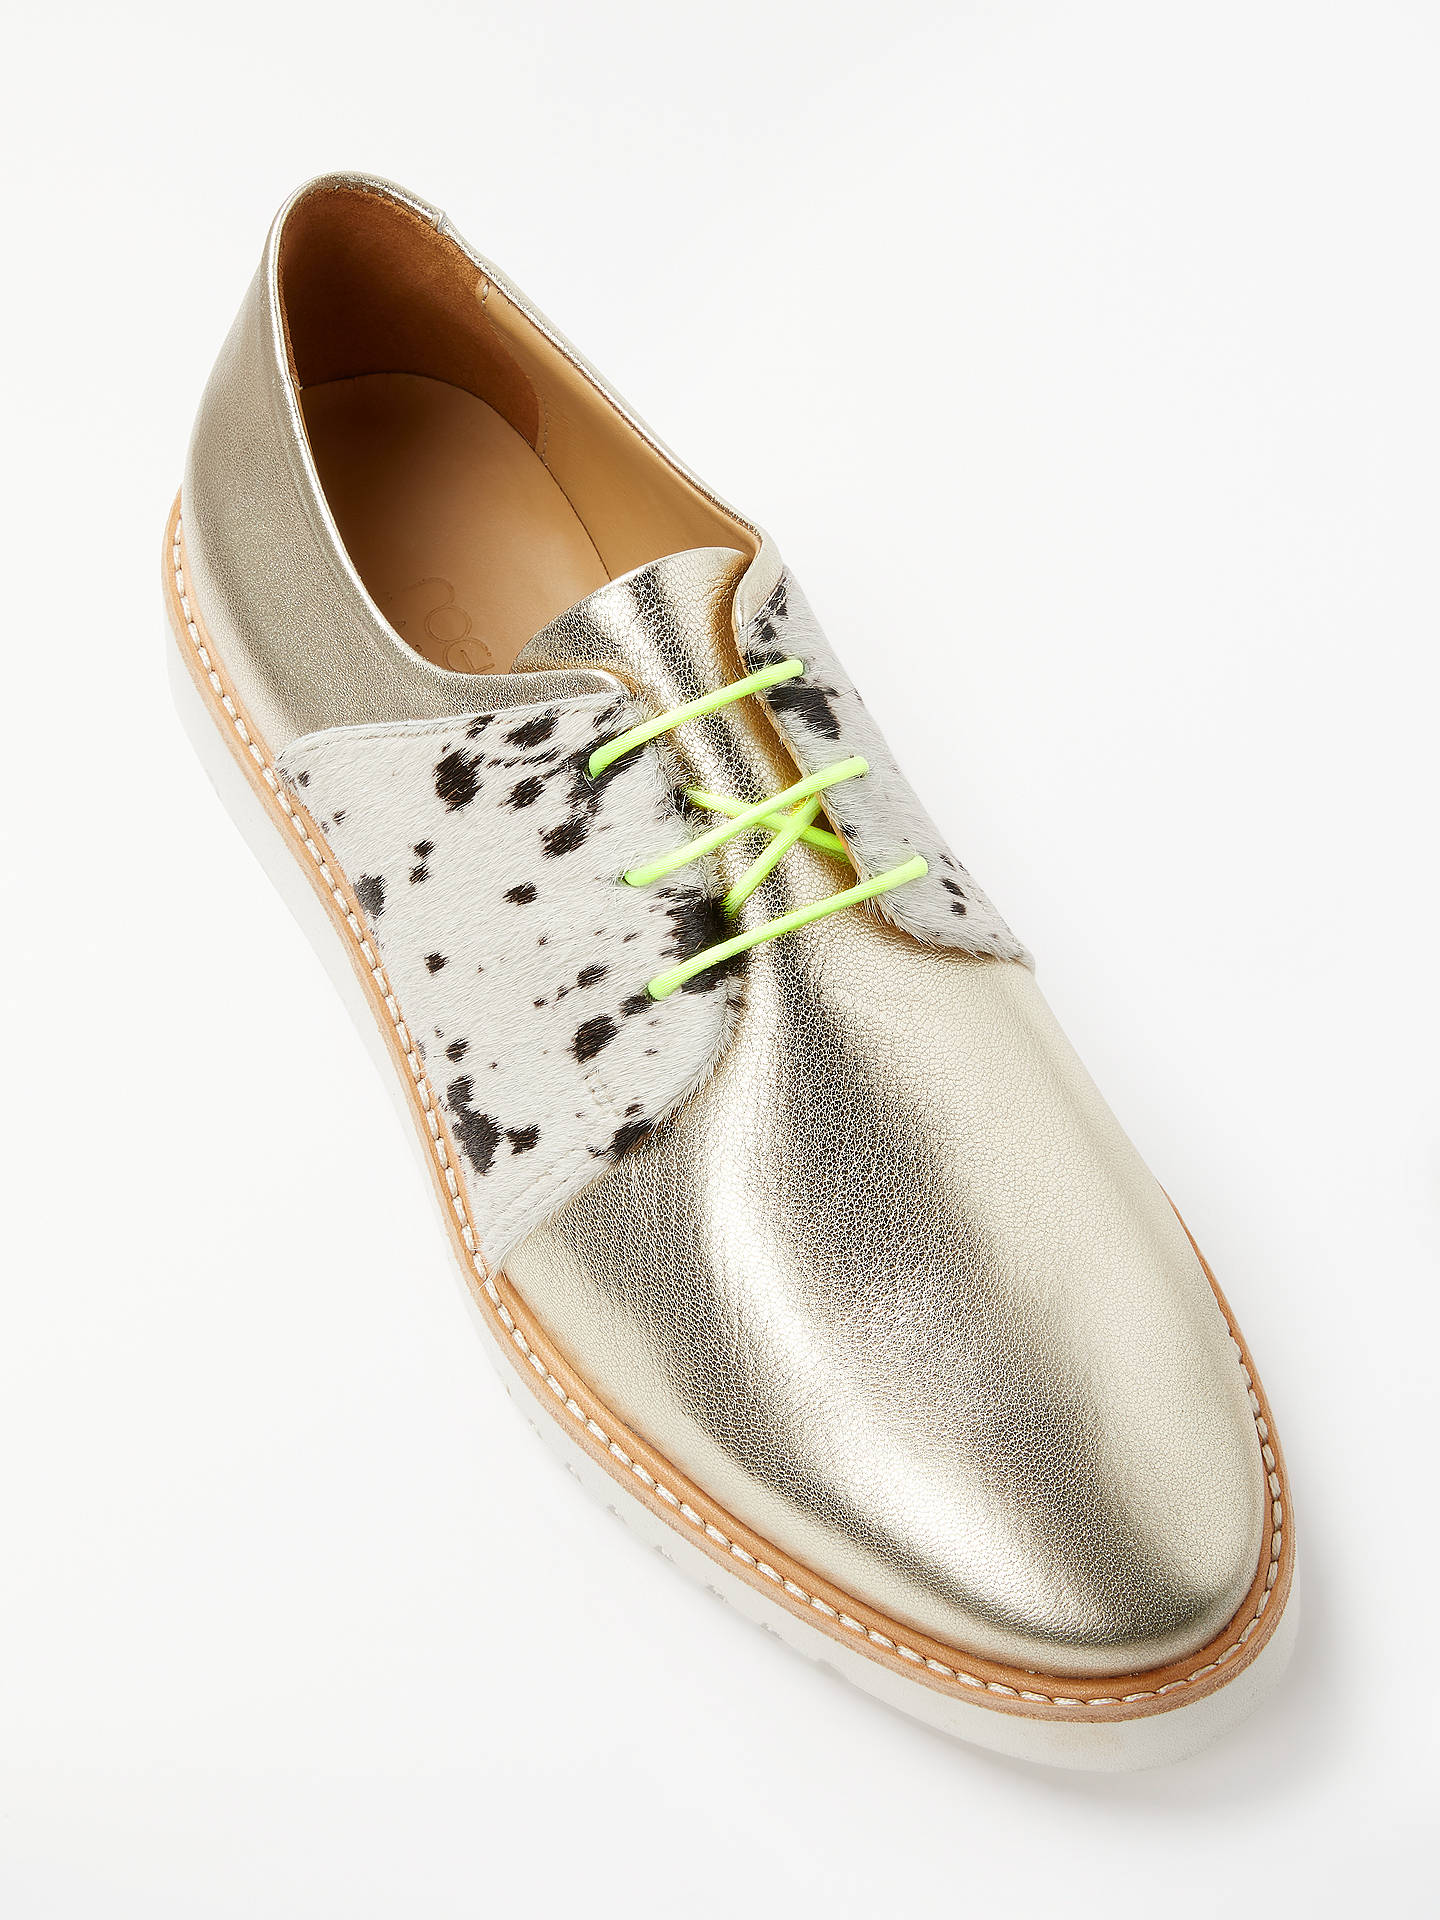 BuyRogue Matilda Taffy Leather Brogues, Gold, 8 Online at johnlewis.com